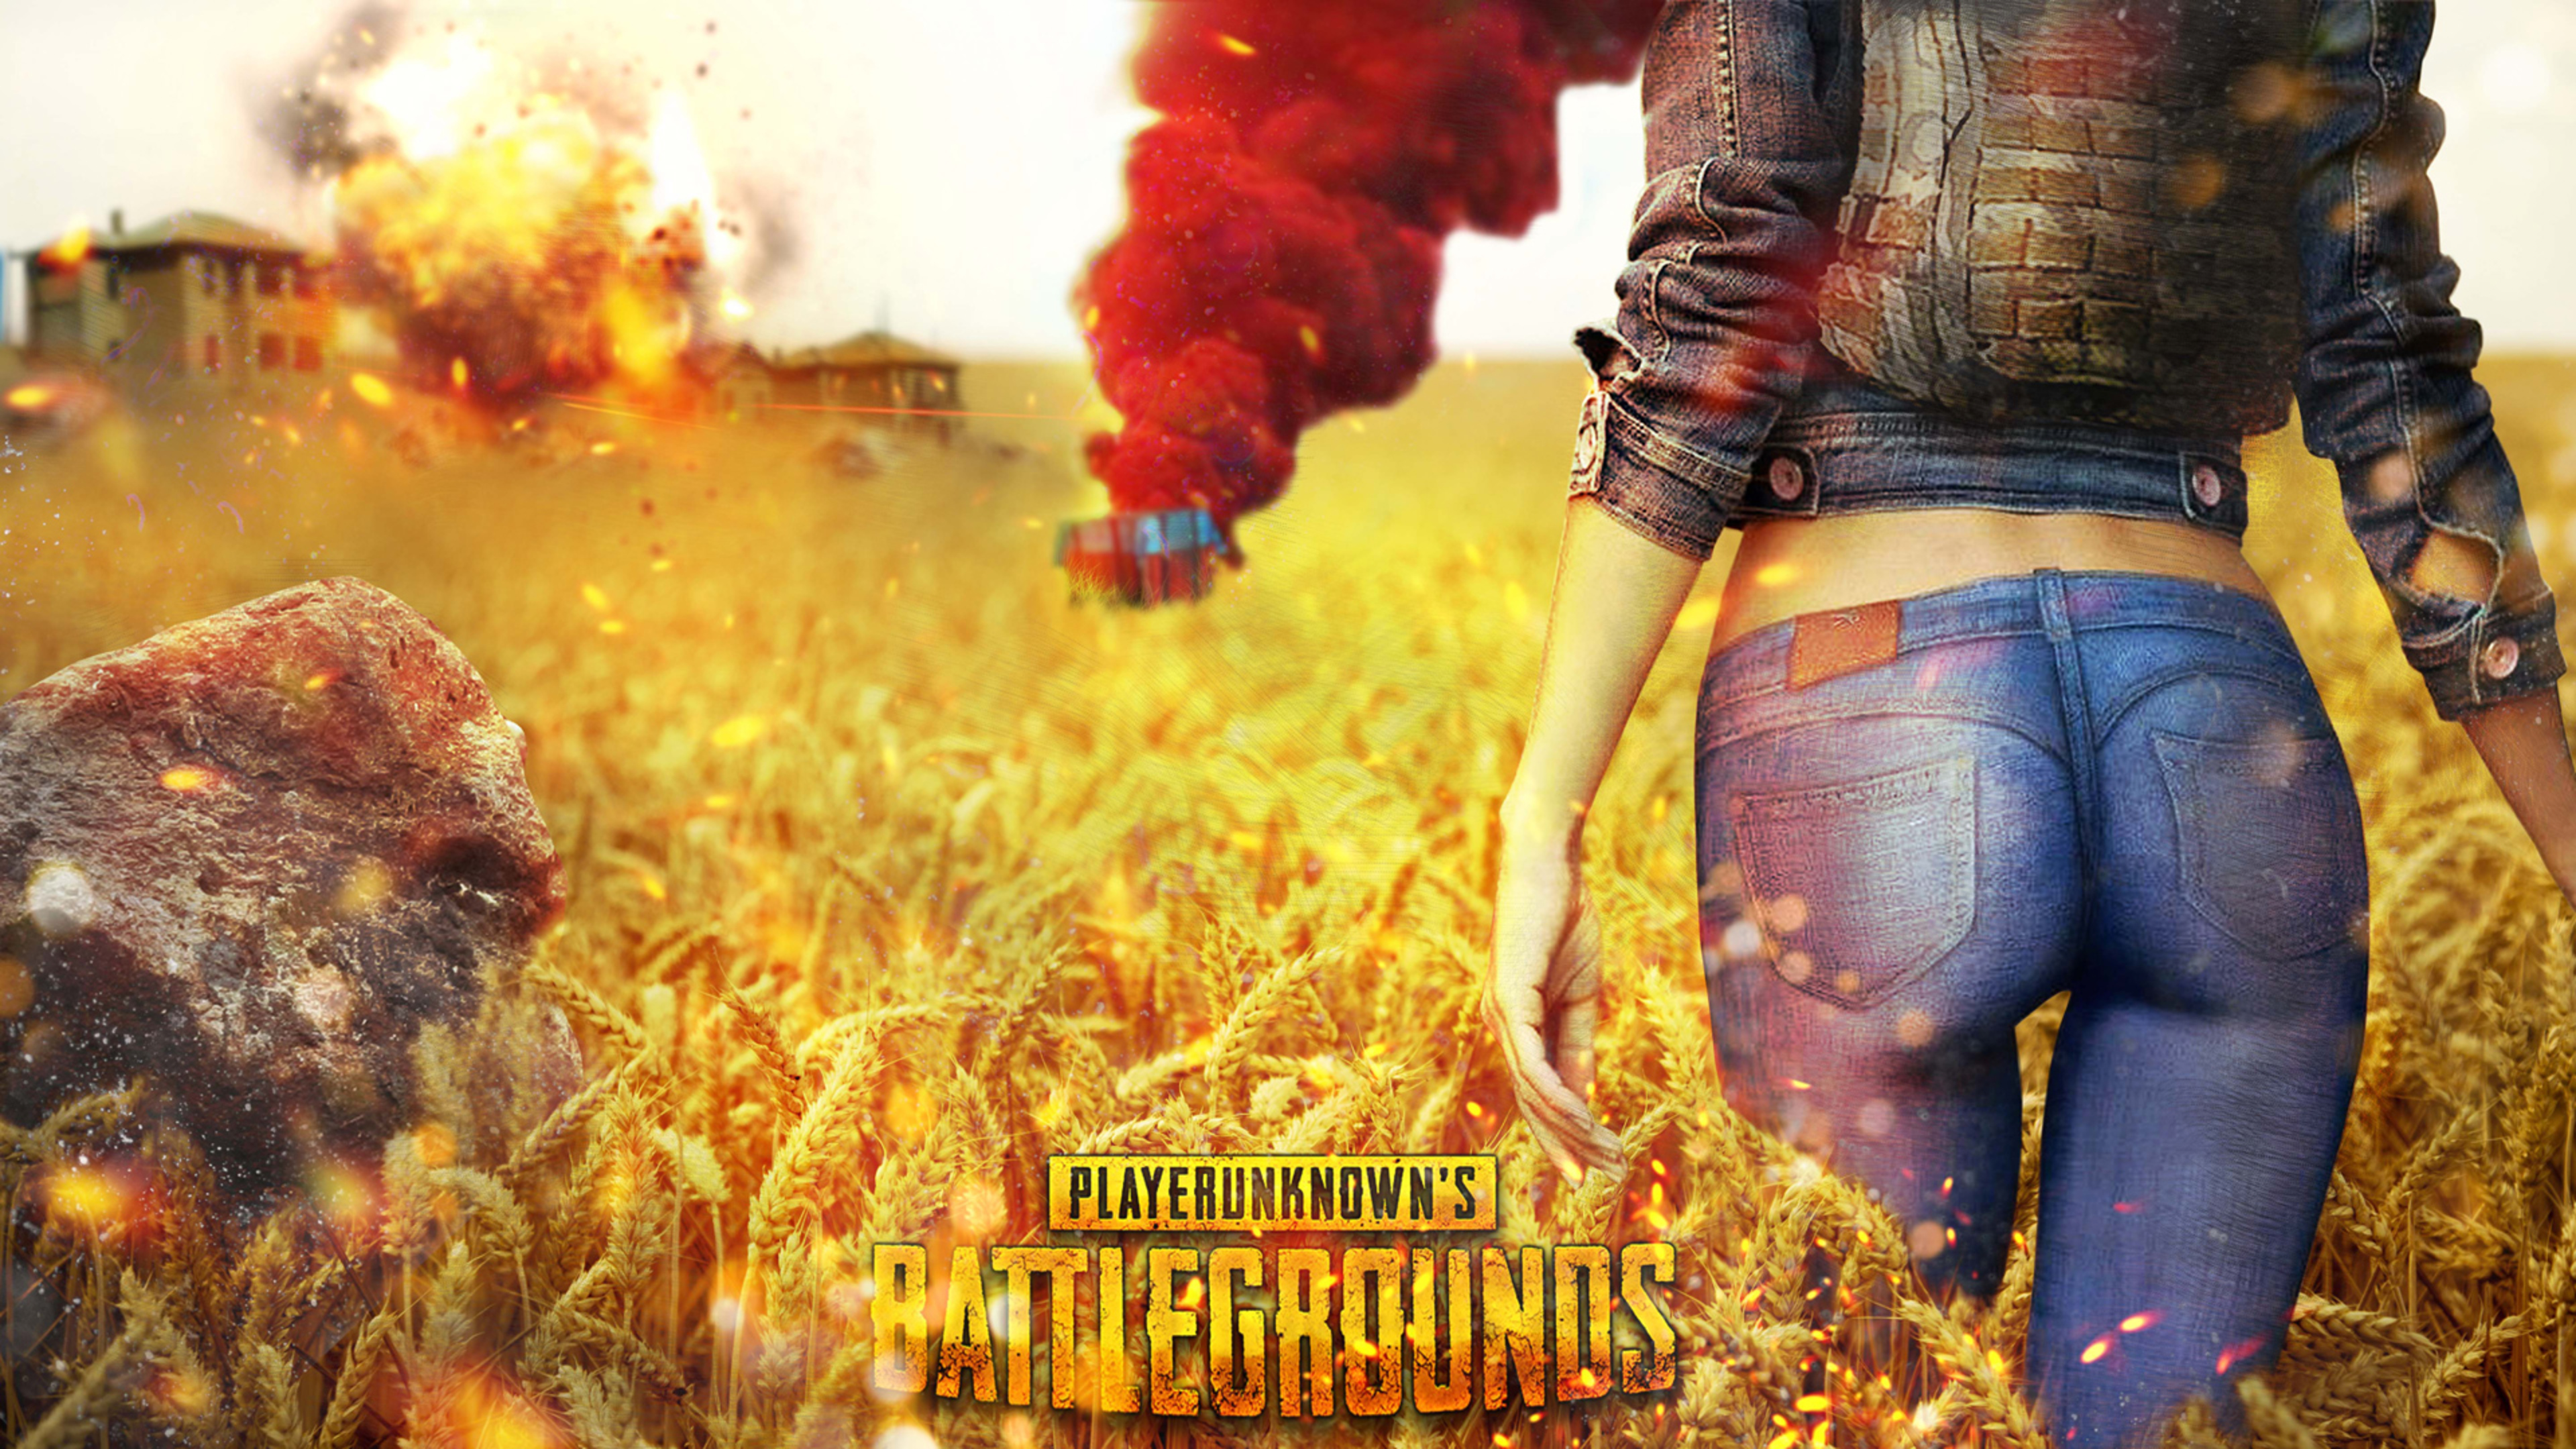 Pubg Best Hd Wallpapers Pubg: Playerunknowns Battlegrounds PUBG Cover 4K Wallpaper